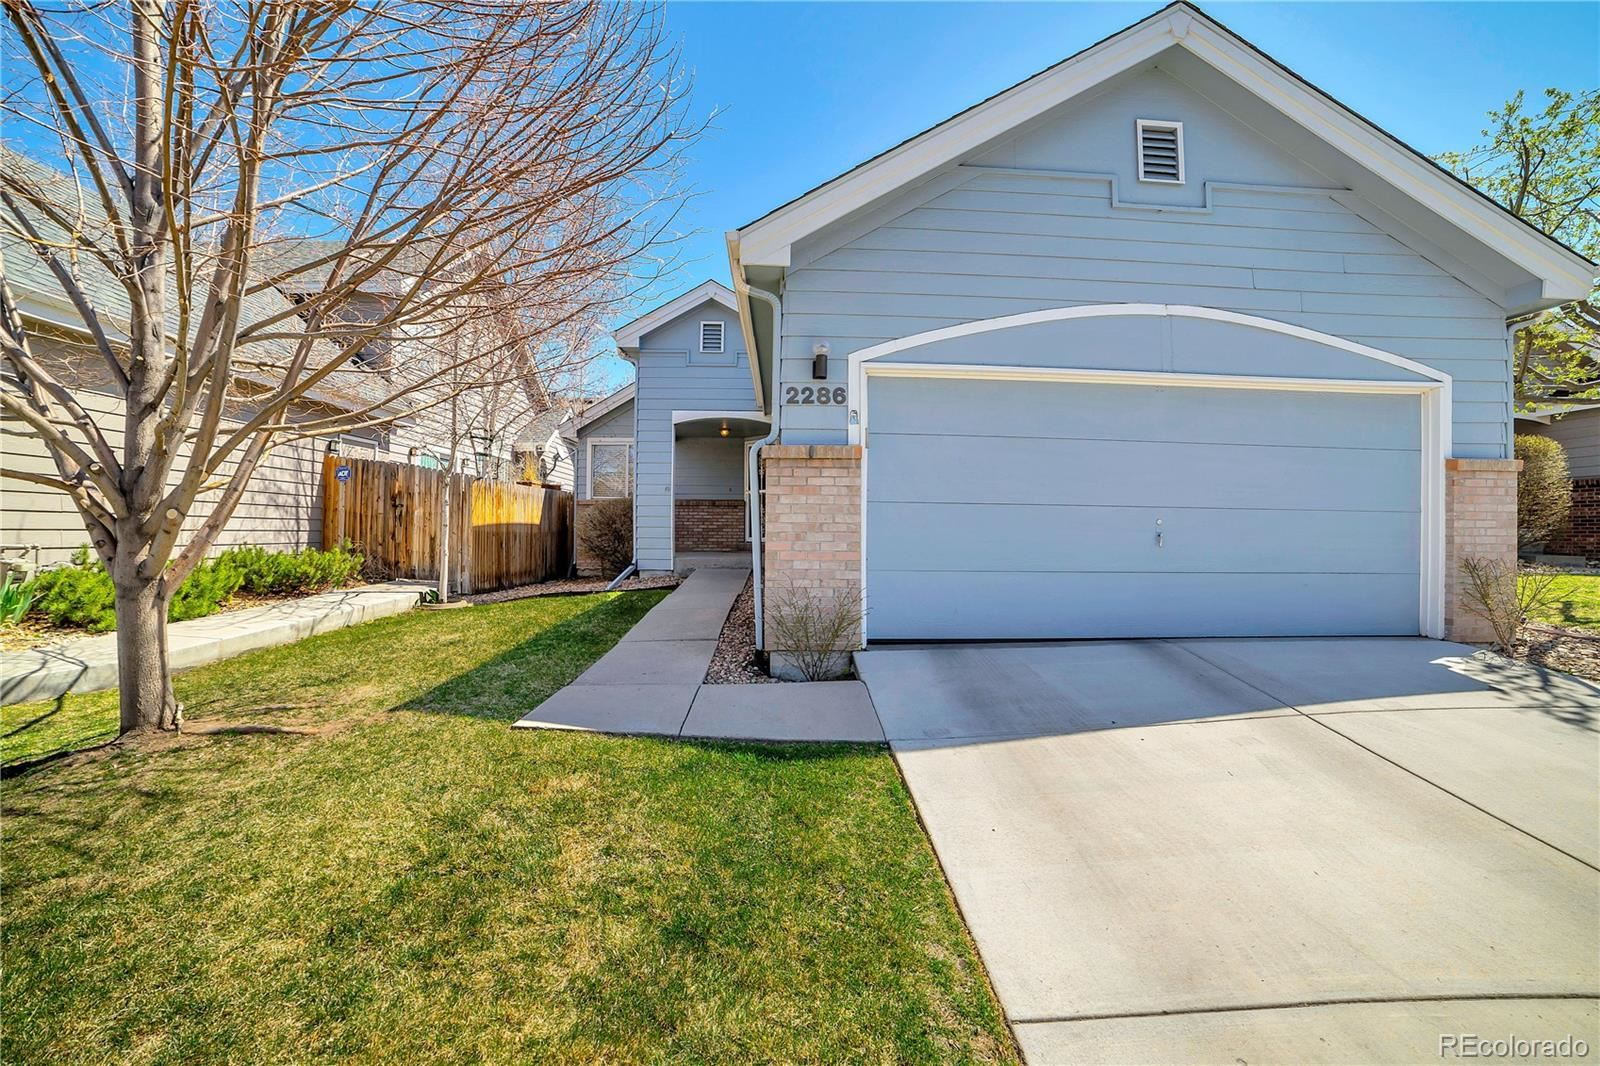 2286 S Kenton, Aurora, CO 80014 - #: 5090749